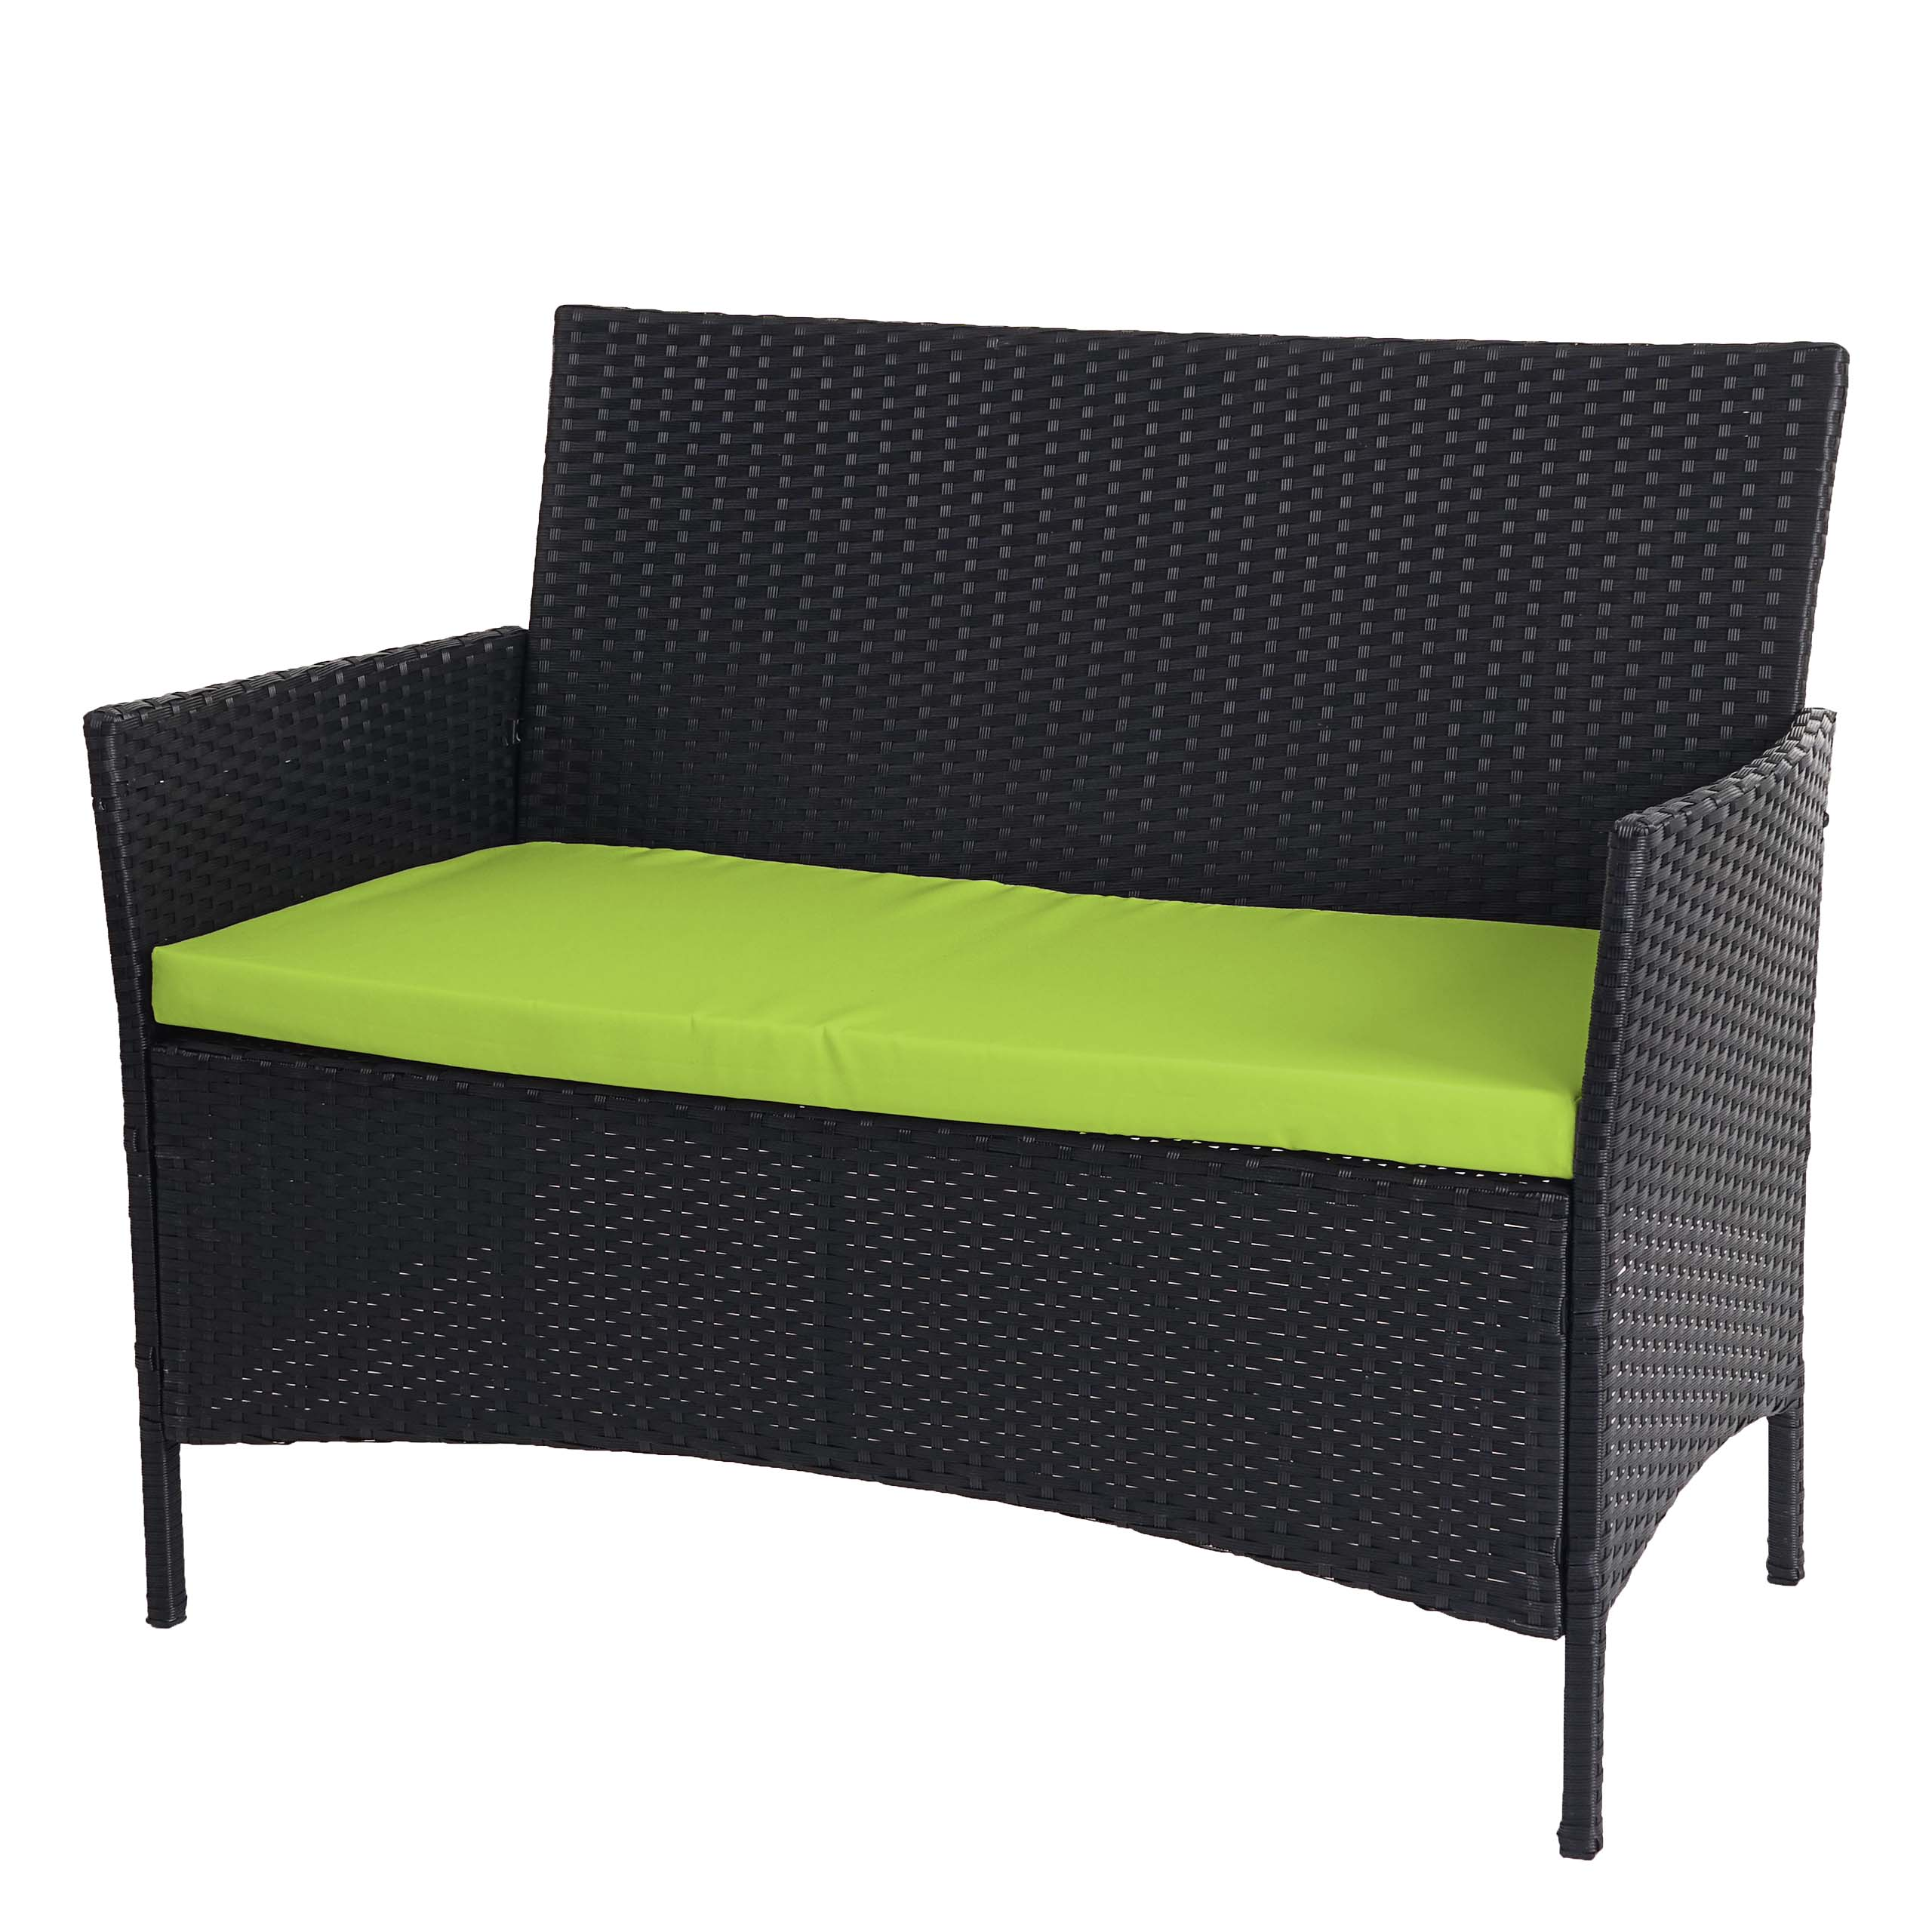 poly rattan gartenbank halden sitzbank bank anthrazit kissen gr n. Black Bedroom Furniture Sets. Home Design Ideas